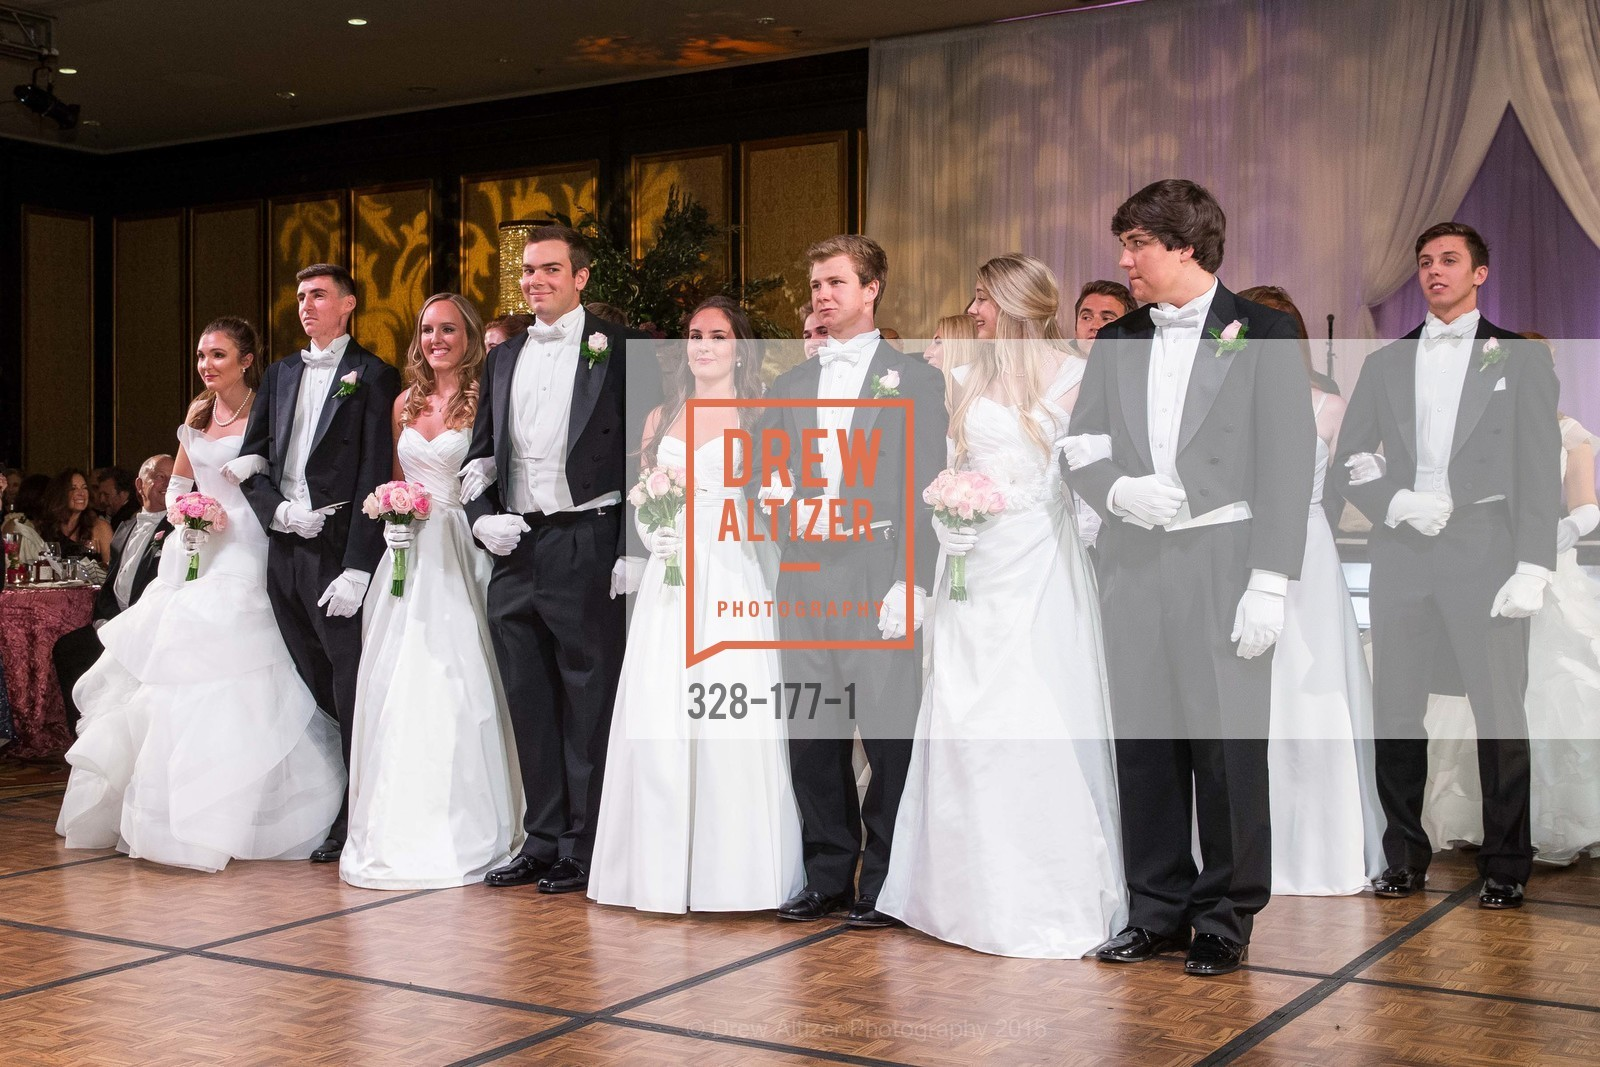 Jennifer Hannah Baylis, Elias Morrison Schwartz, Katarina Lina Churich, Peter James Campana, Hannah Elizabeth Cusack, TJ Polite, Julia Marley Chenette, Michael Jeffrey King, The 2015 San Francisco Debutante Ball, The Westin St. Francis San Francisco Union Square. 335 Powell St, June 20th, 2015,Drew Altizer, Drew Altizer Photography, full-service agency, private events, San Francisco photographer, photographer california